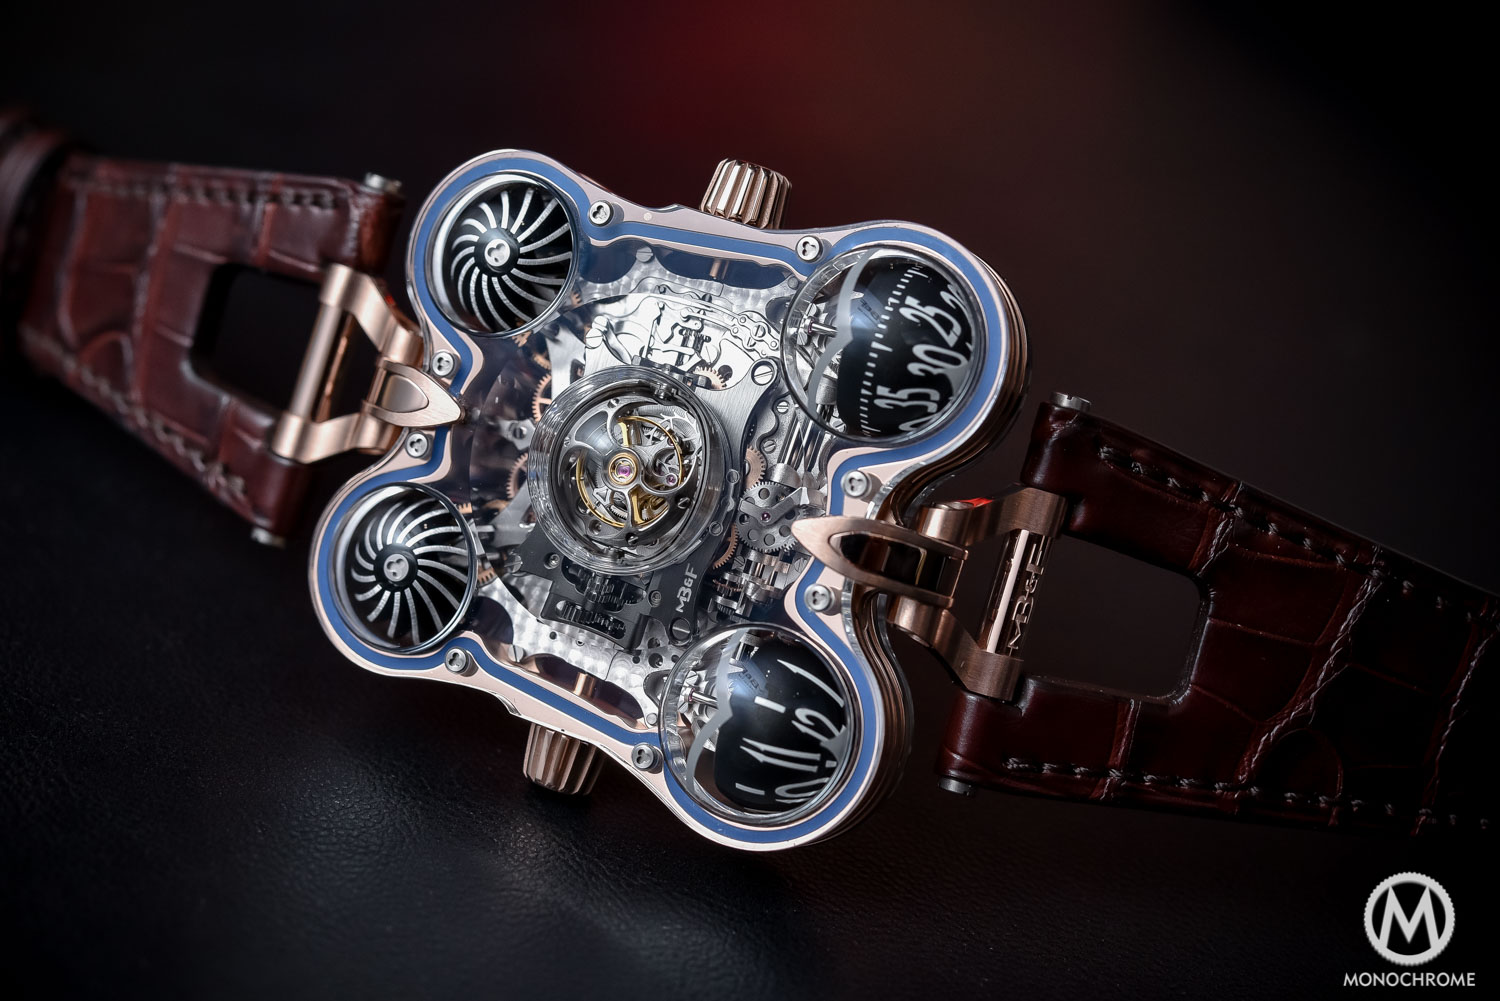 MB&F MH6 SV Sapphire Vision Red Gold - SIHH 2016